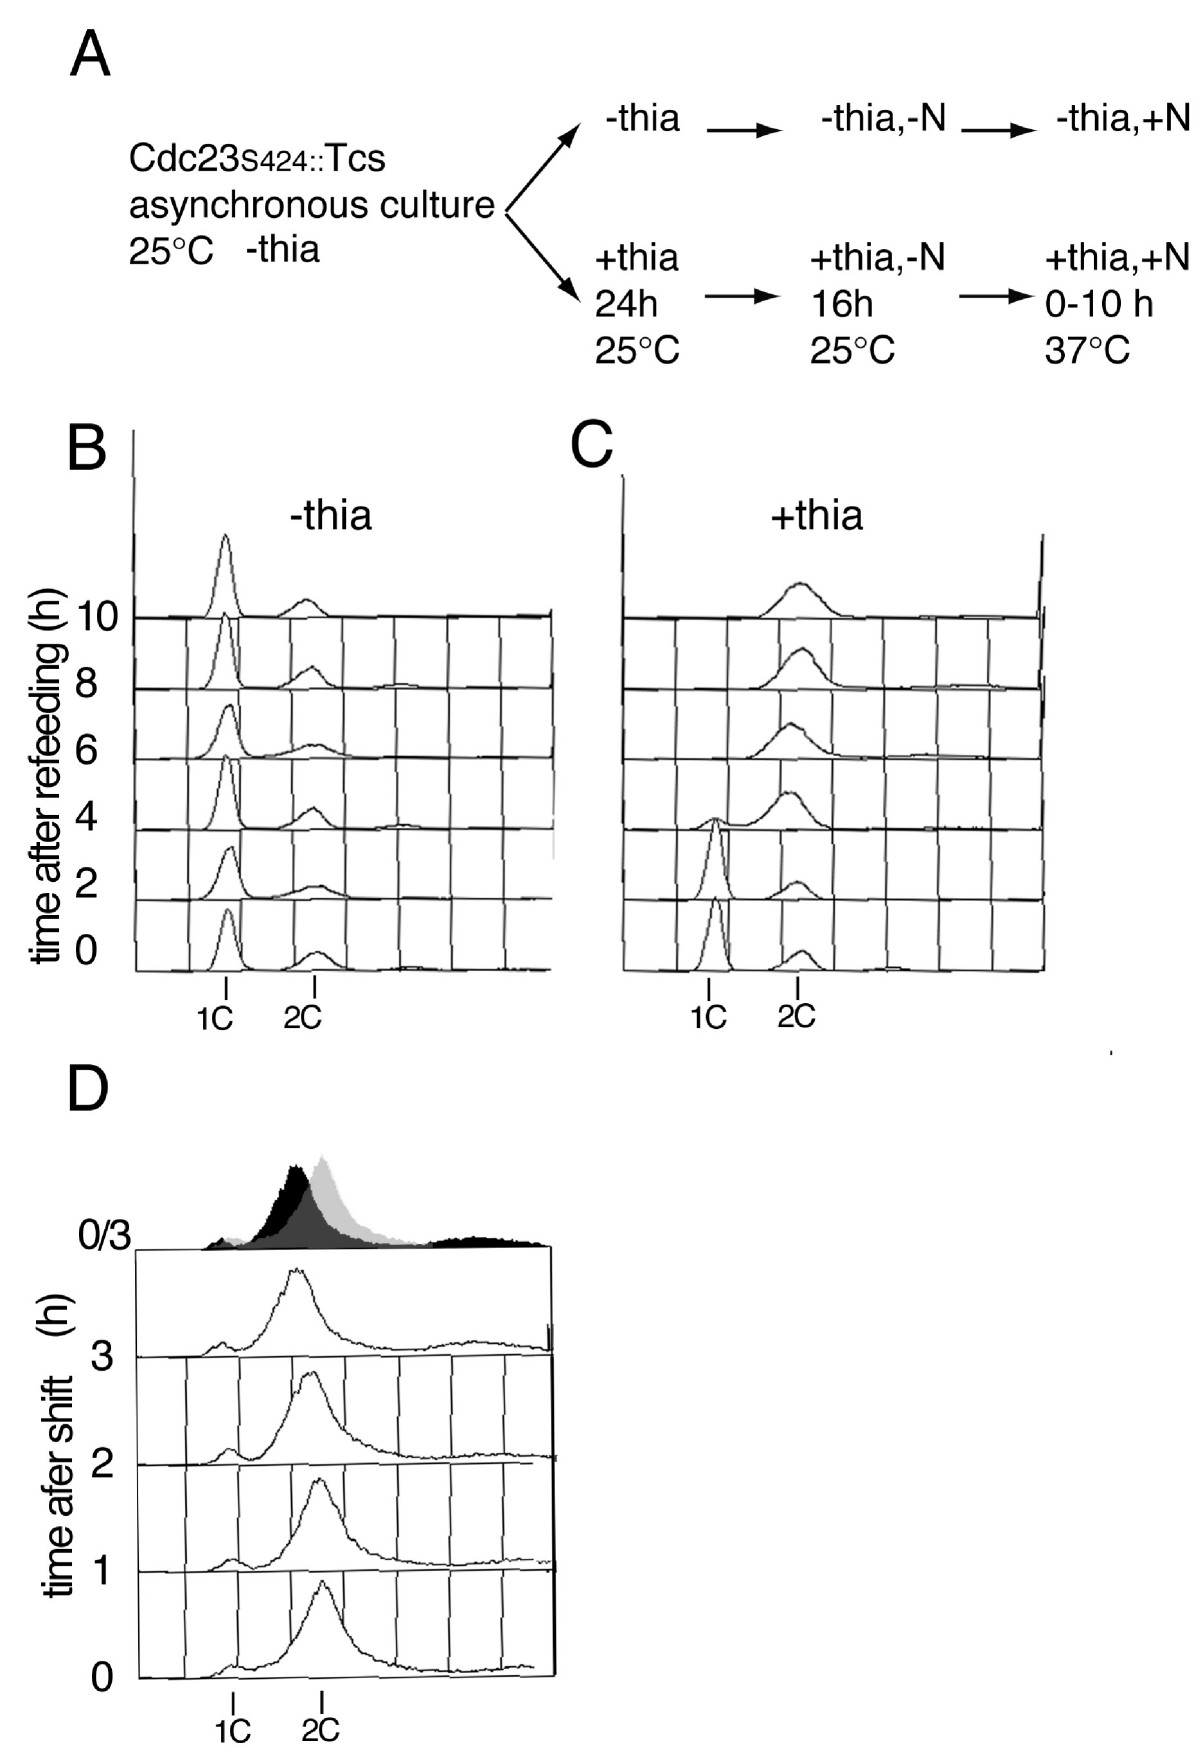 http://static-content.springer.com/image/art%3A10.1186%2F1471-2199-6-13/MediaObjects/12867_2005_Article_80_Fig3_HTML.jpg